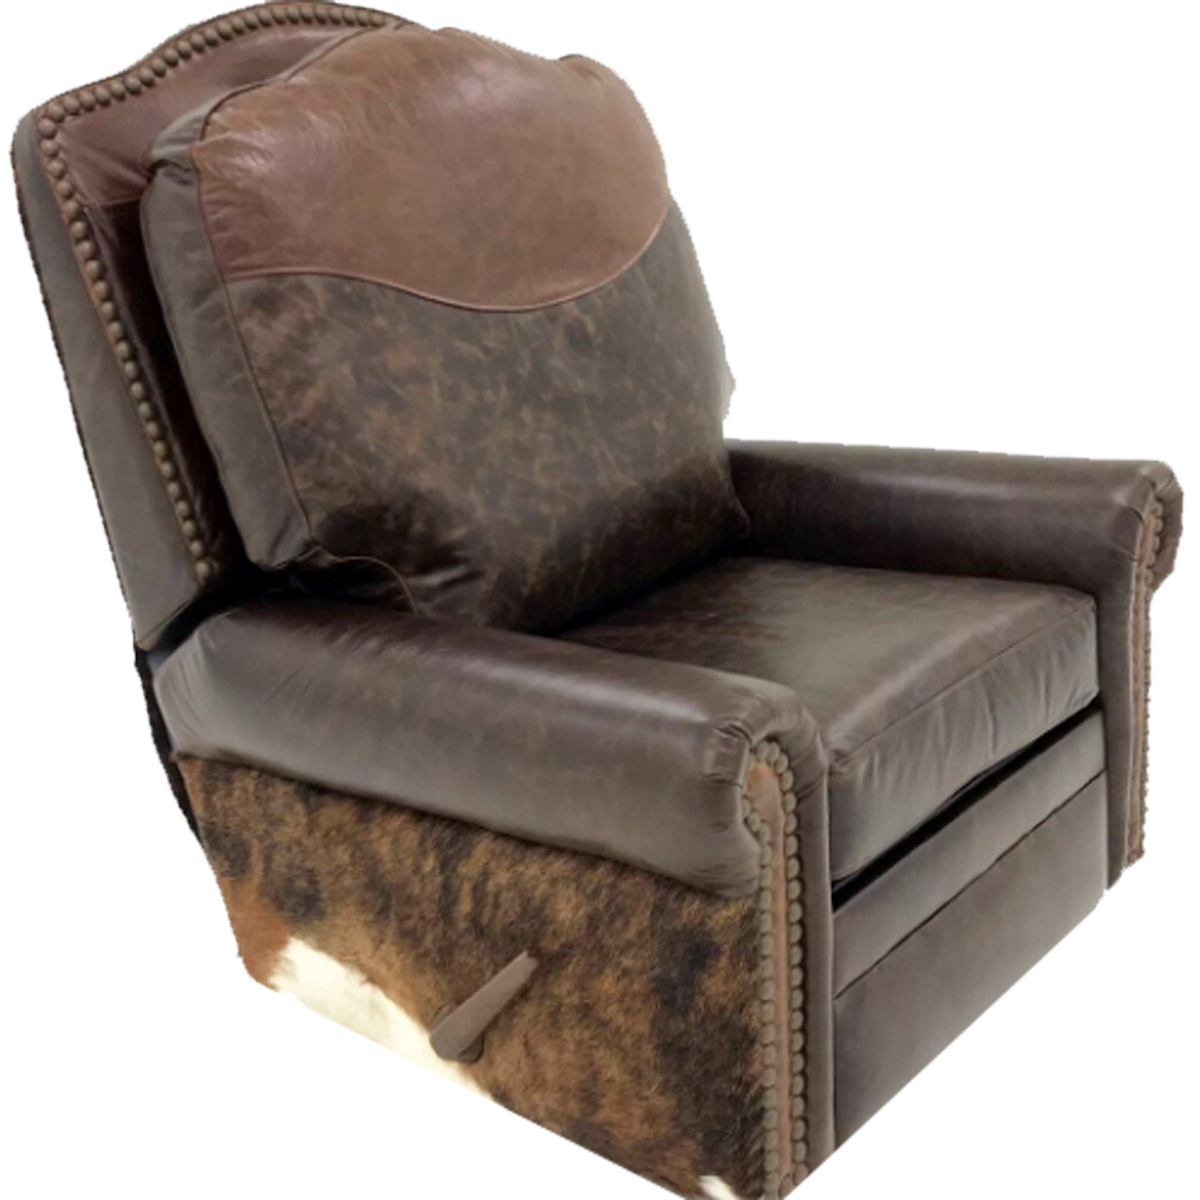 Rocking C Swivel Glider Recliner